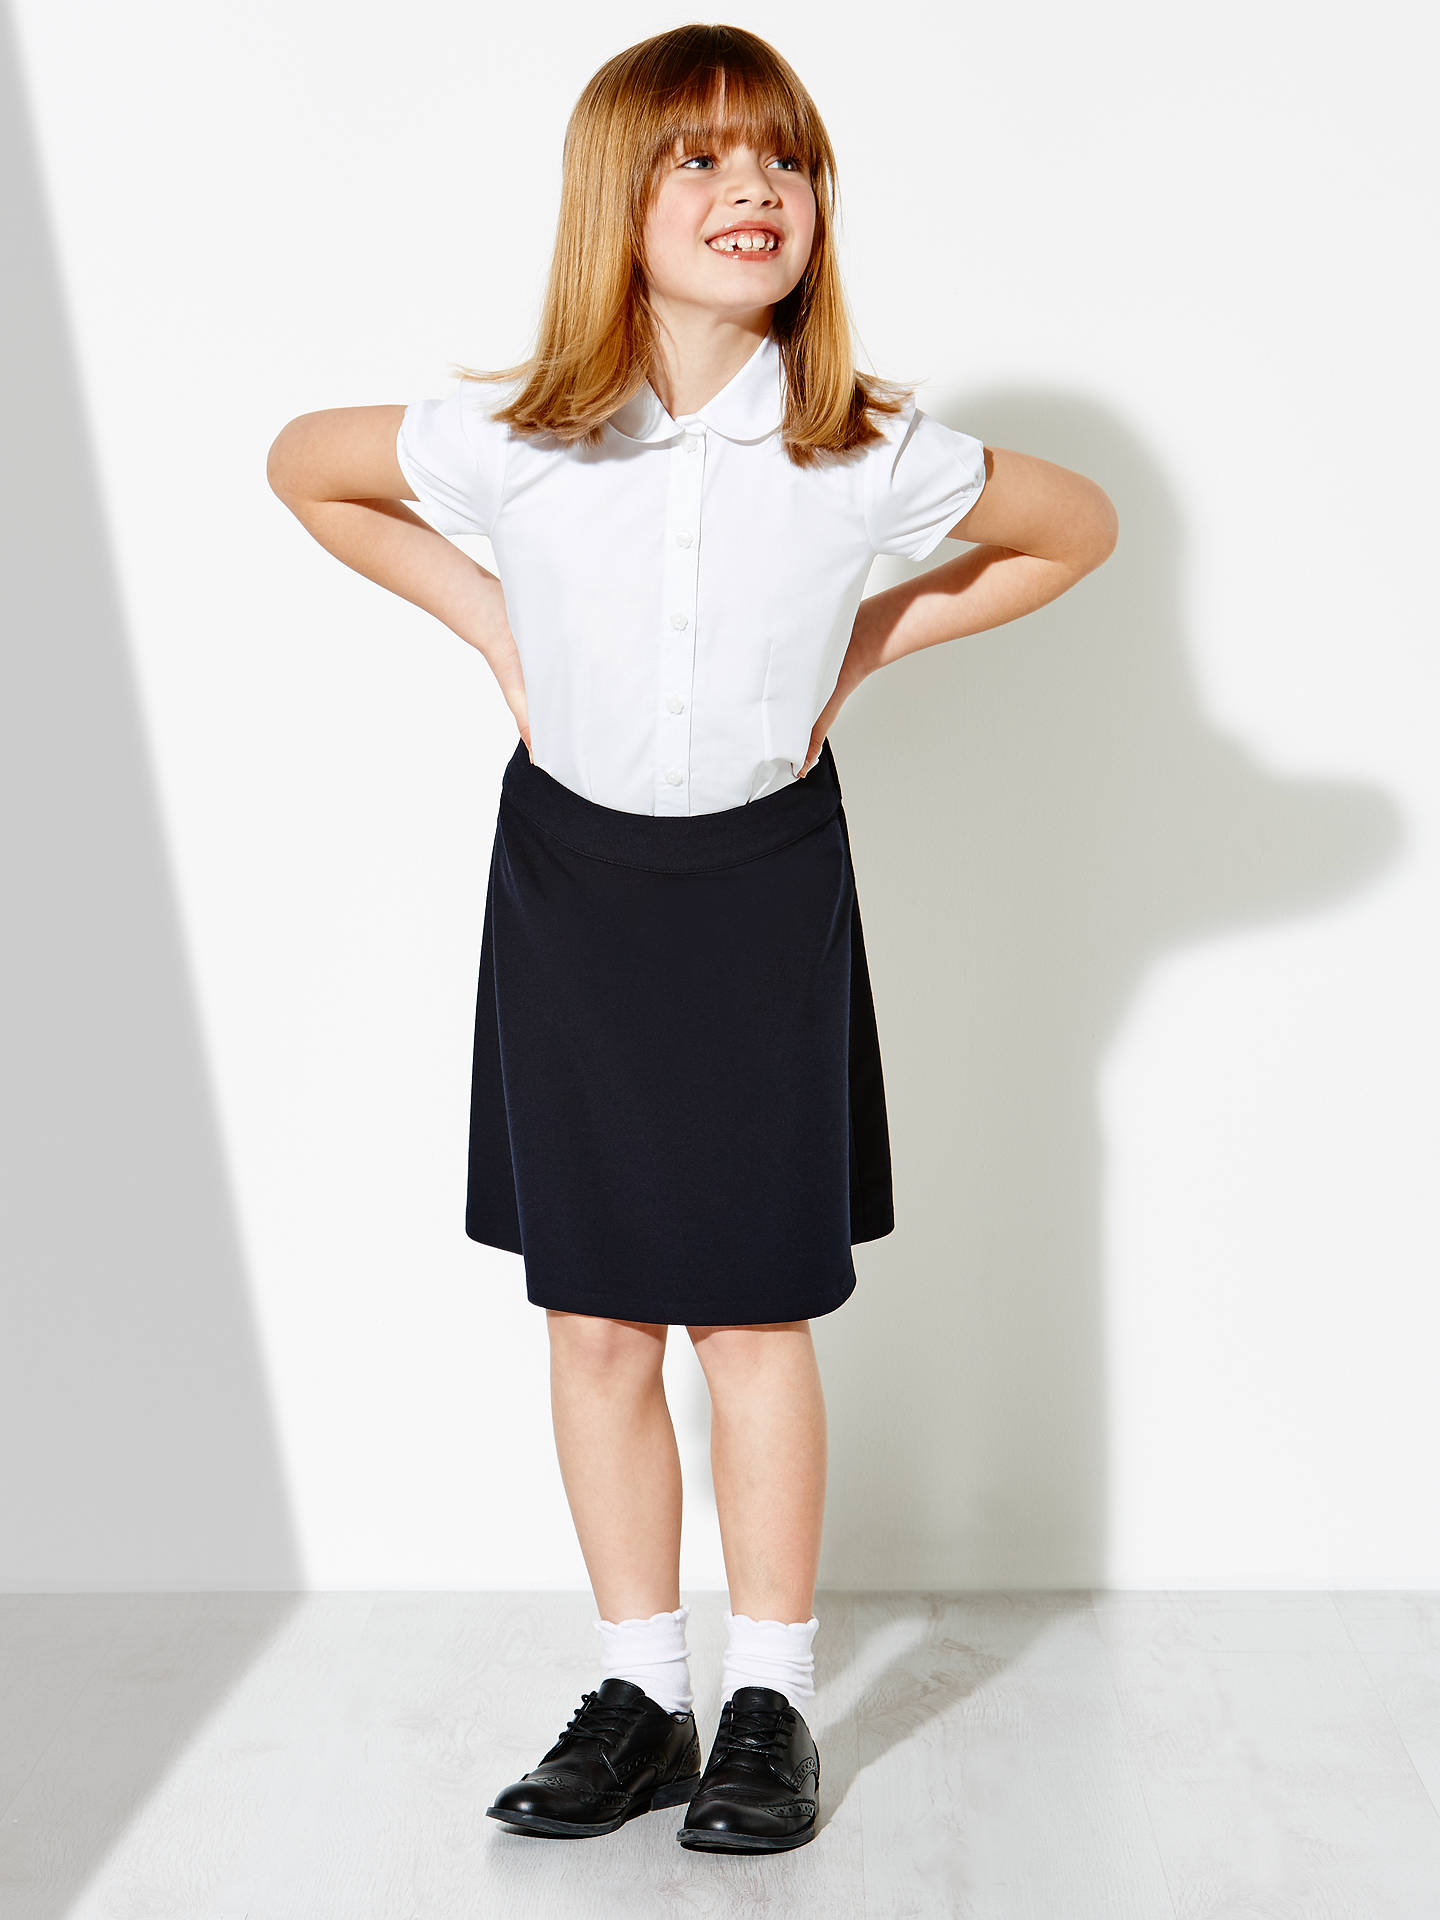 Buy John Lewis & Partners Girls' Cap Sleeve Fitted Blouse, White, 3 years Online at johnlewis.com